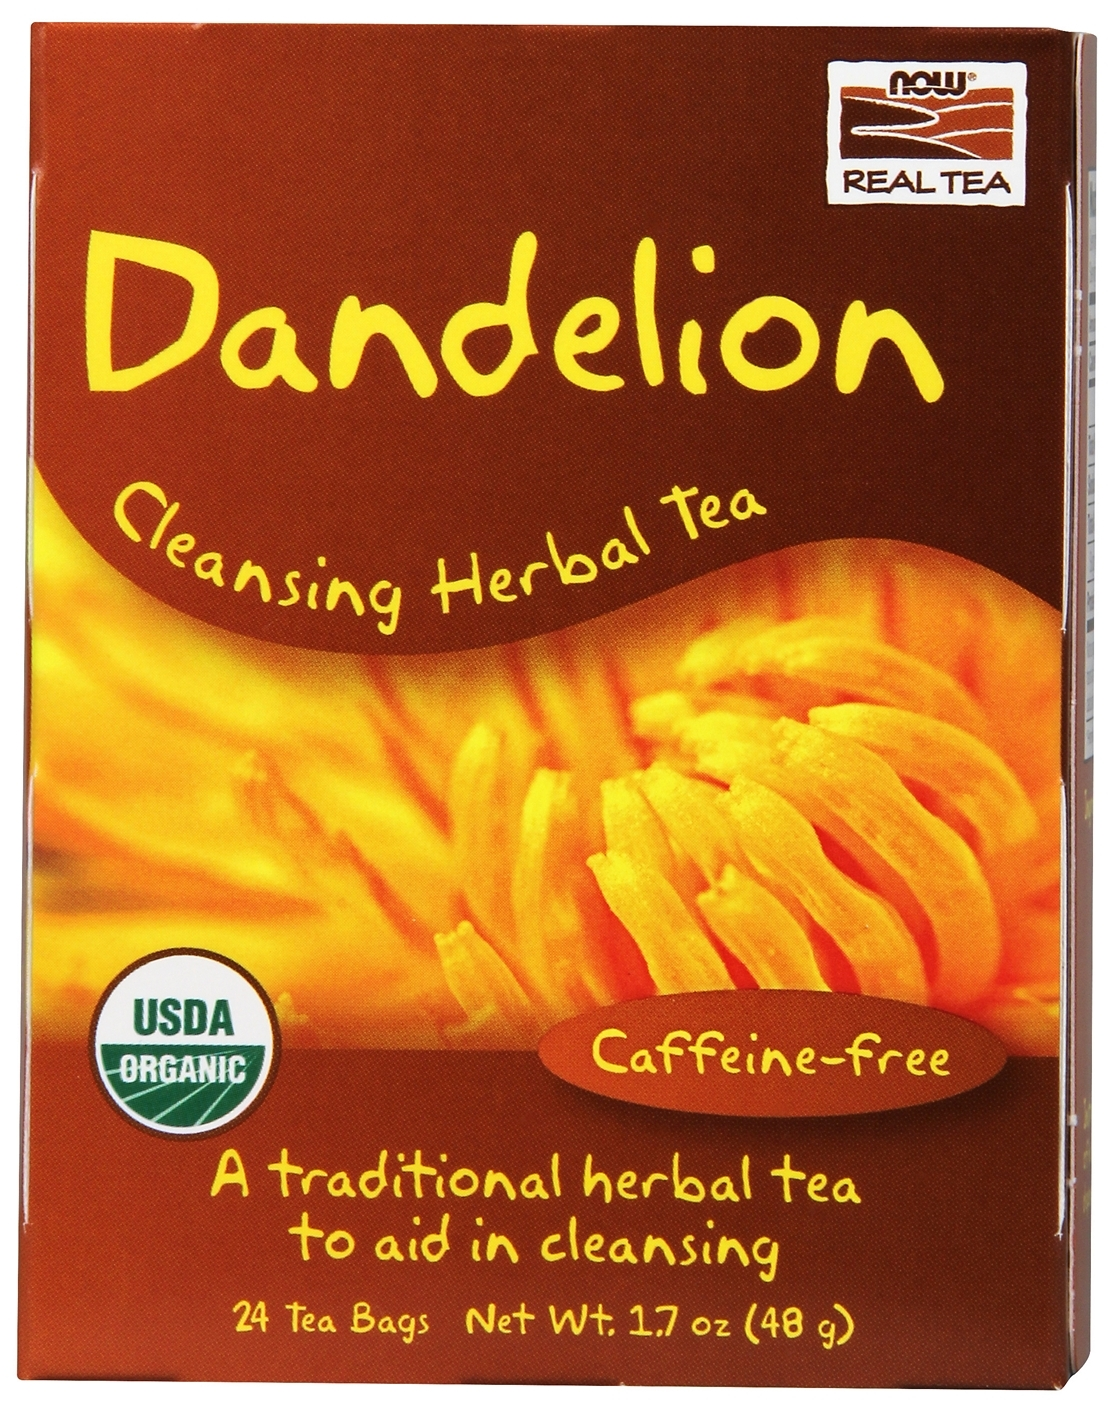 Dandelion Cleansing Herbal Tea 24 Tea Bags by NOW Foods